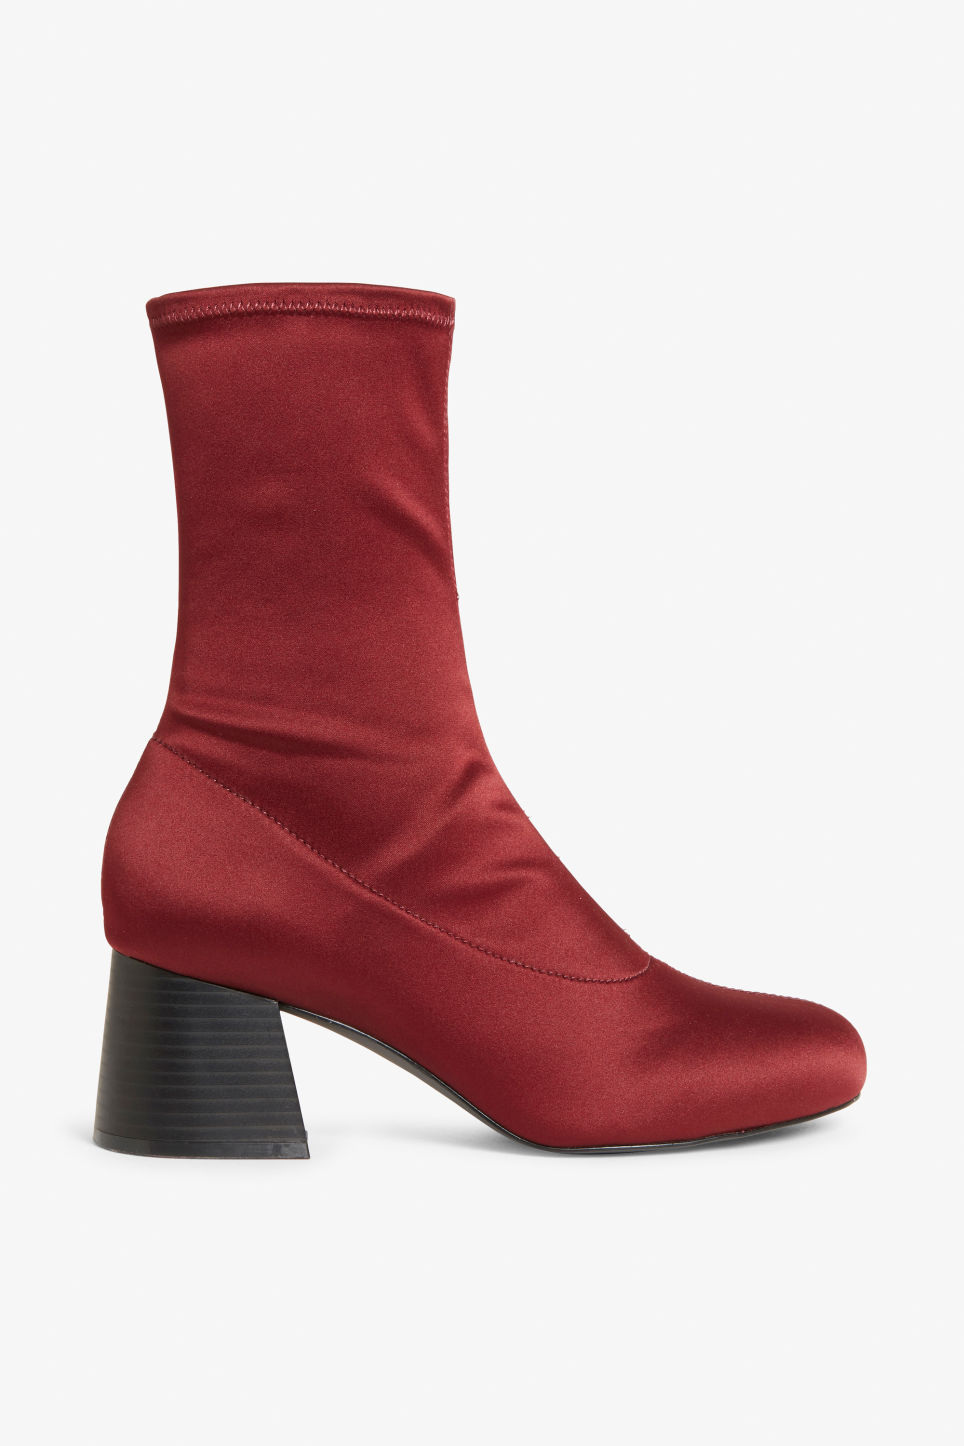 Detailed image of Monki stretch ankle boots in red